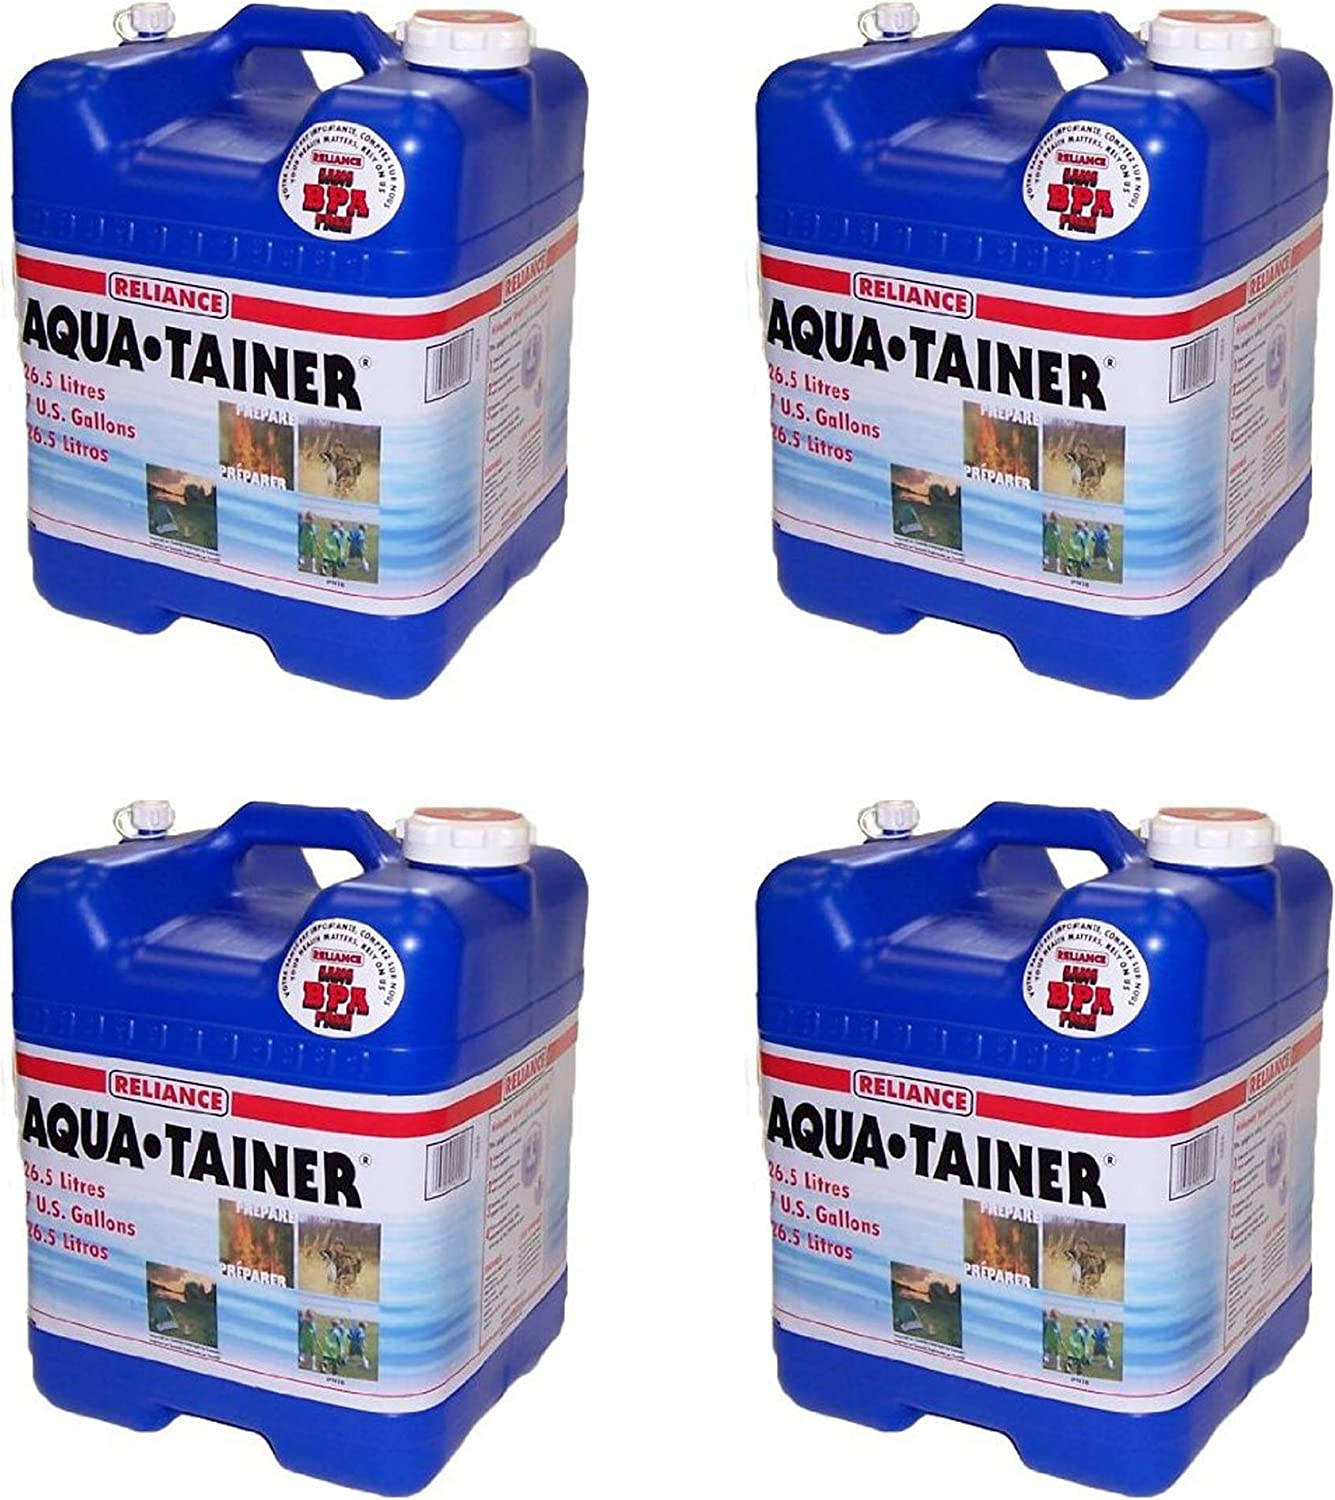 Reliance Products Aqua-Tainer 7 Gallon Rigid Water Container (Pack of 4)